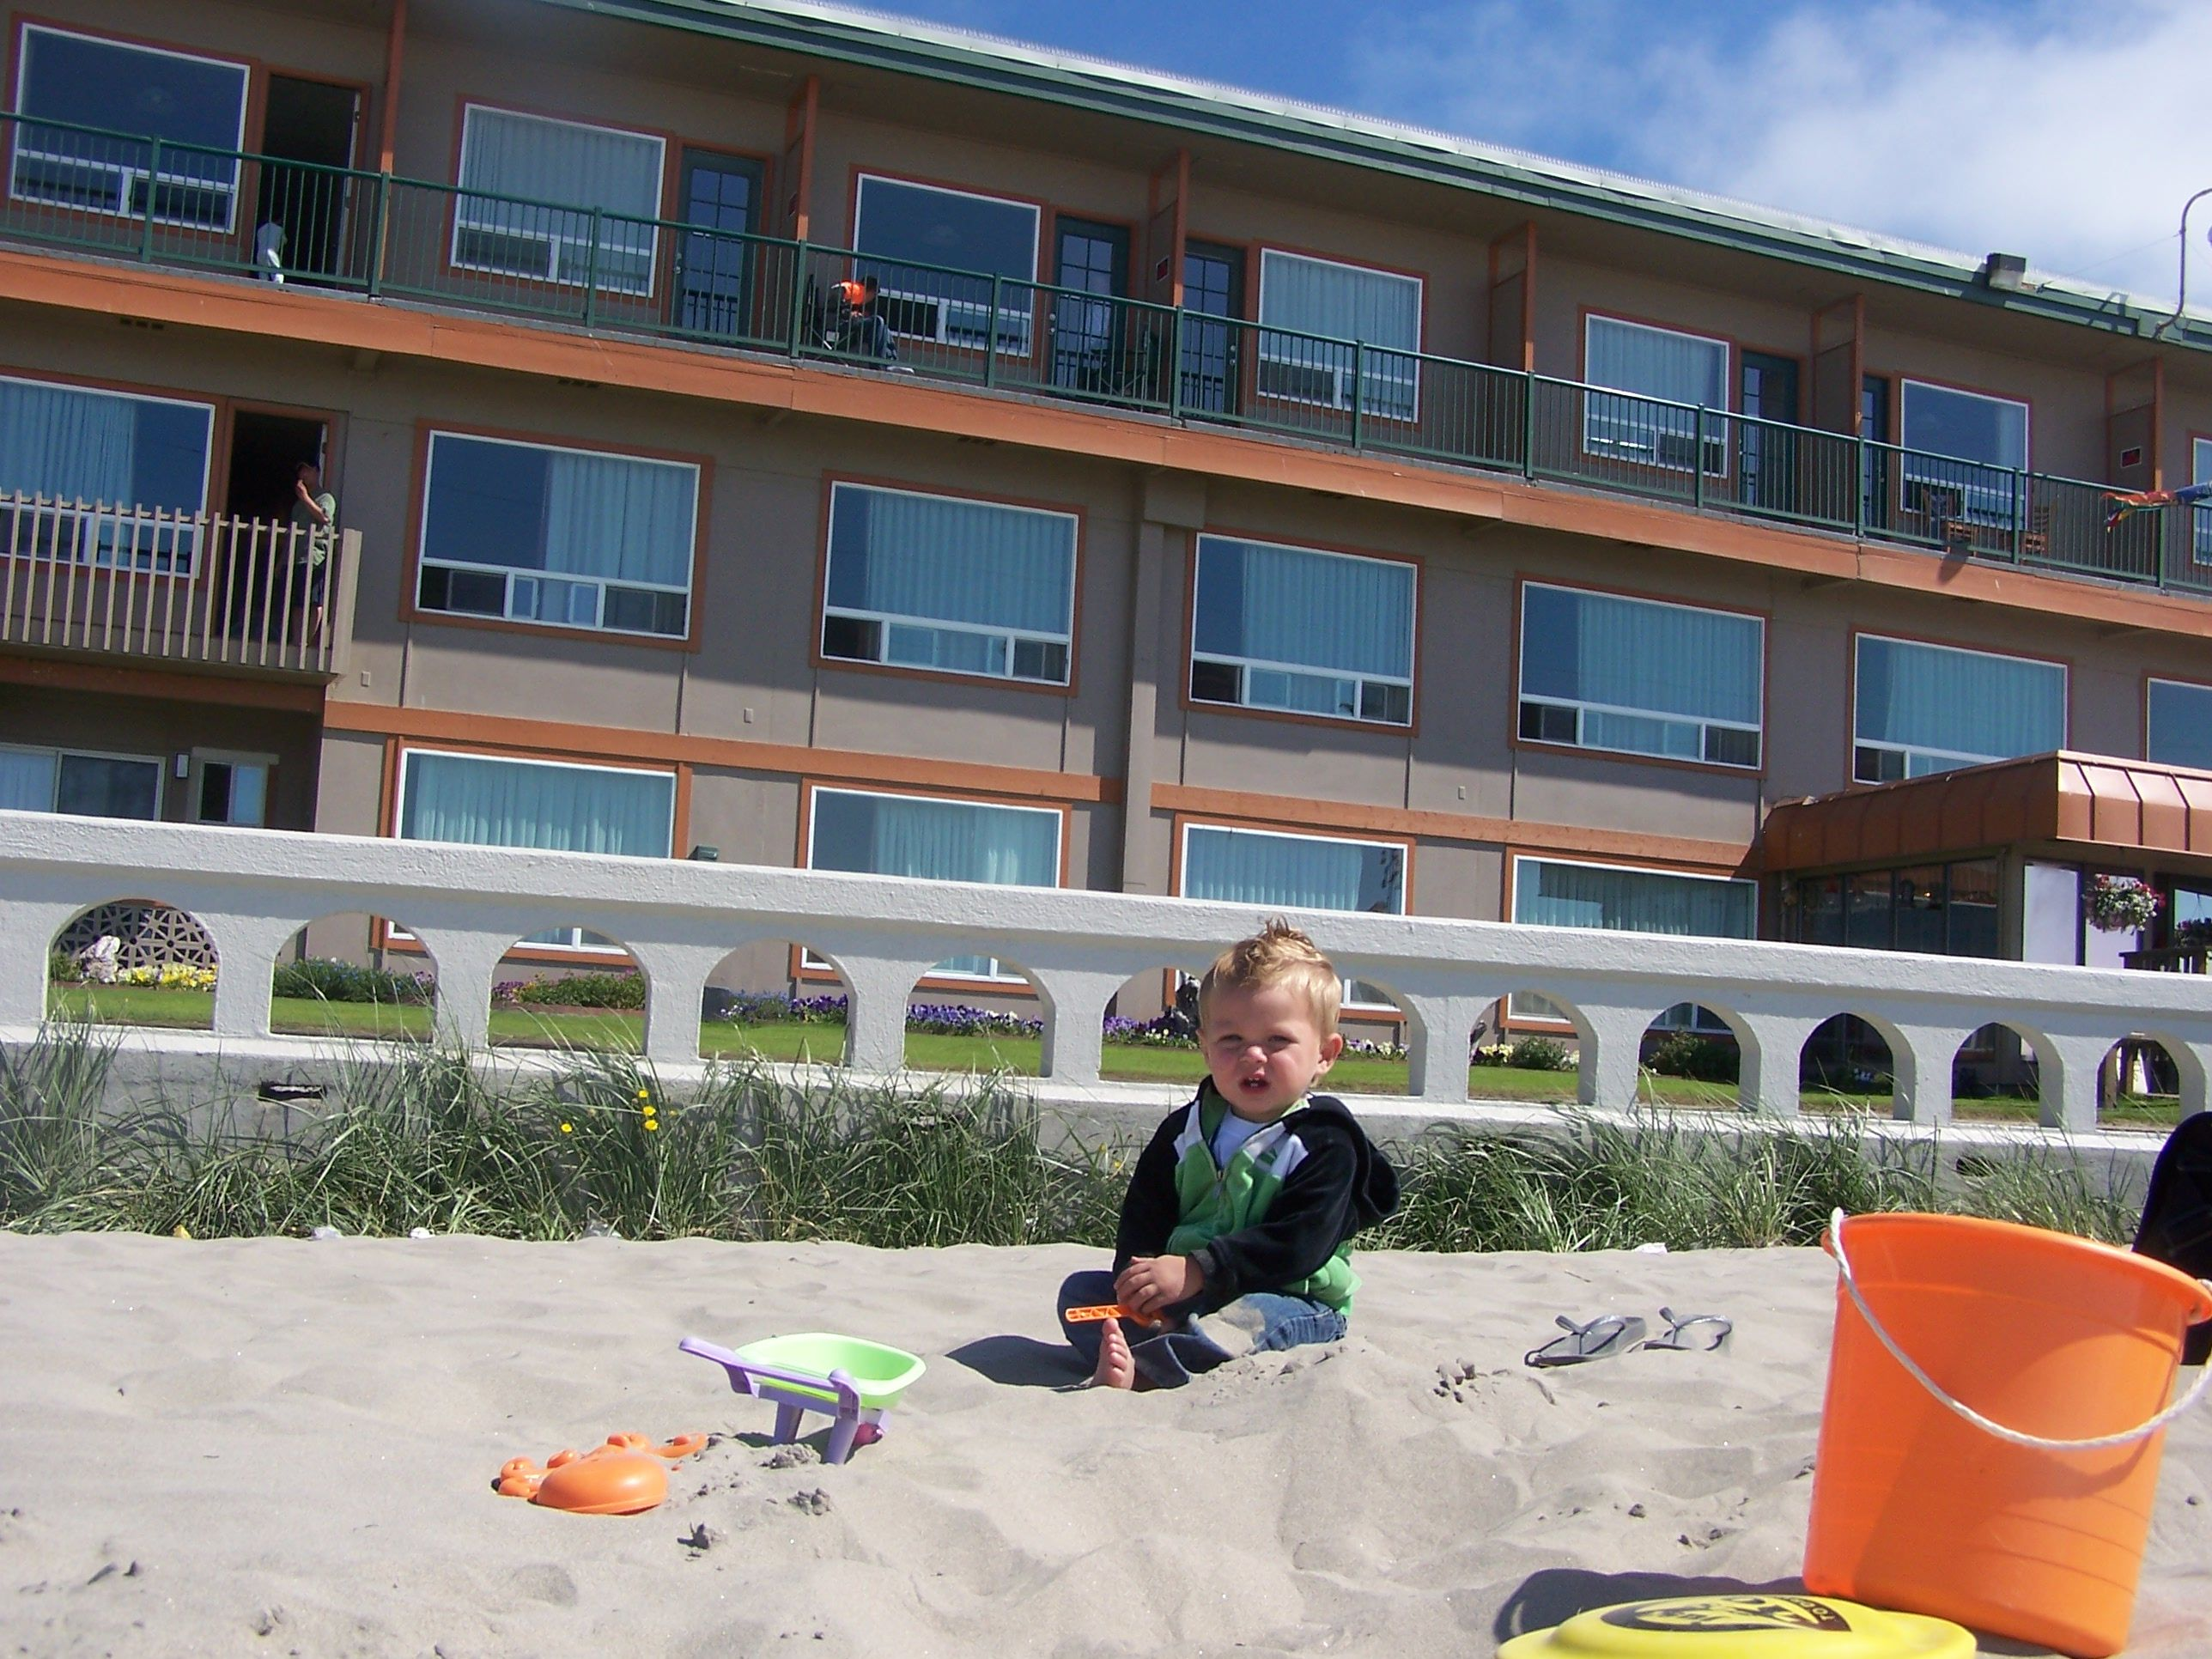 seaside comfort rentals average cottage beach booking overview oregon review inn vacation dollar comforter sand